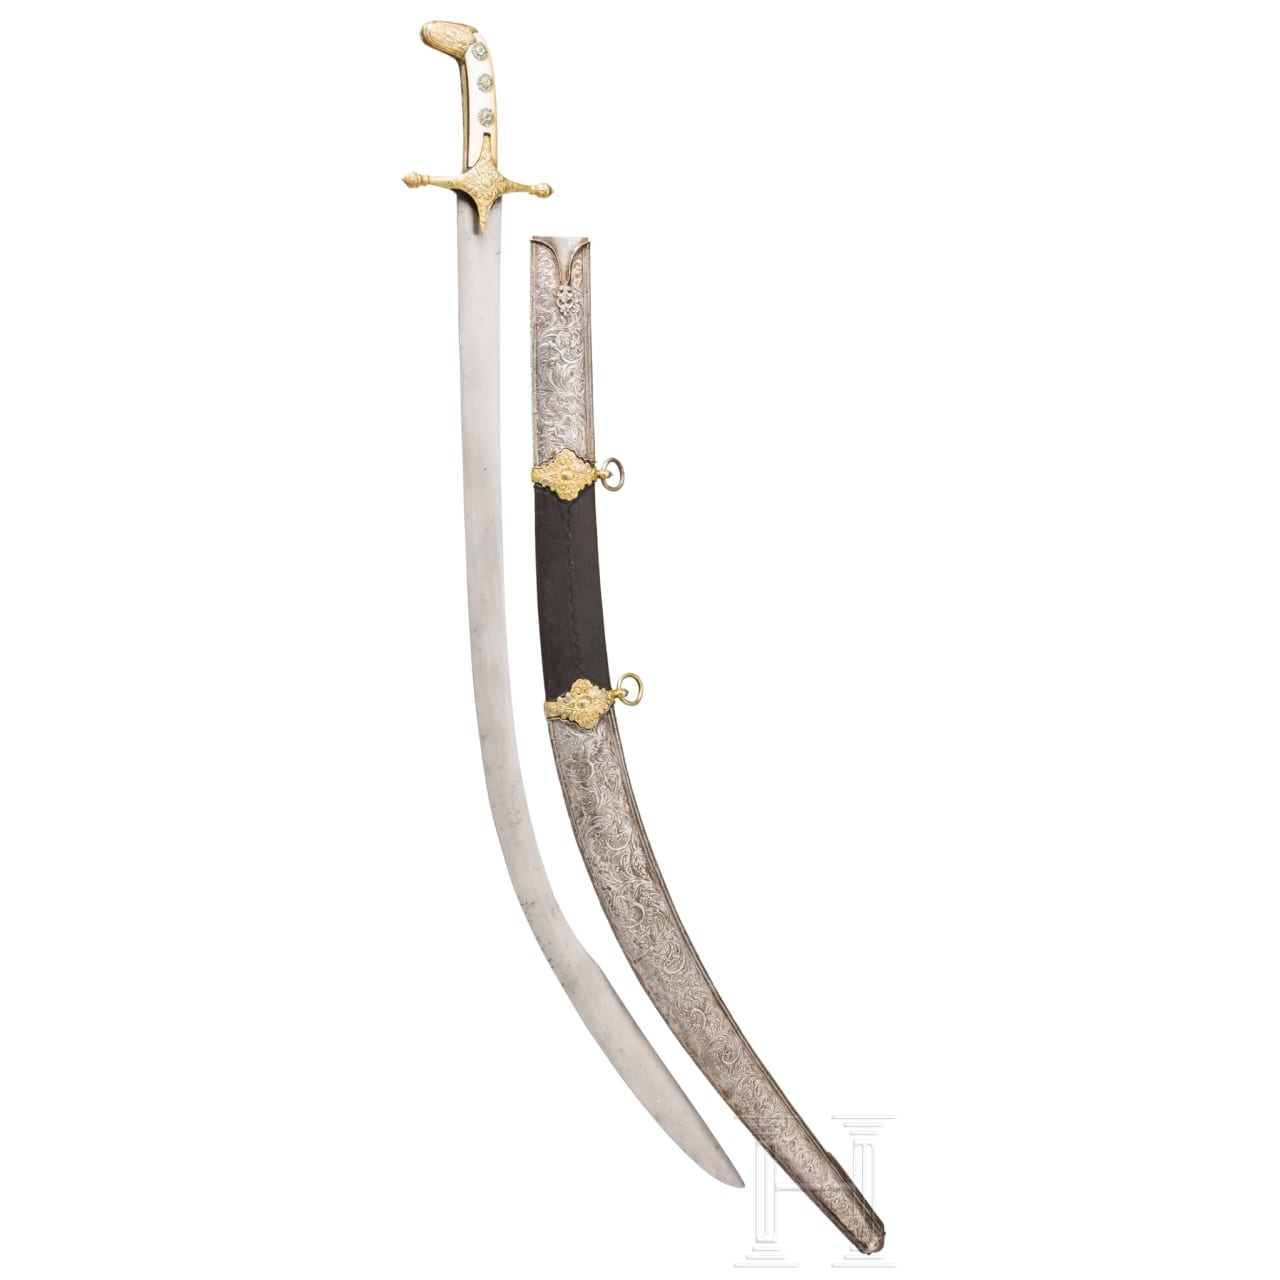 A Balkan Turkish silver-mounted, partially gilt kilij, set with turquoises, late 18th century